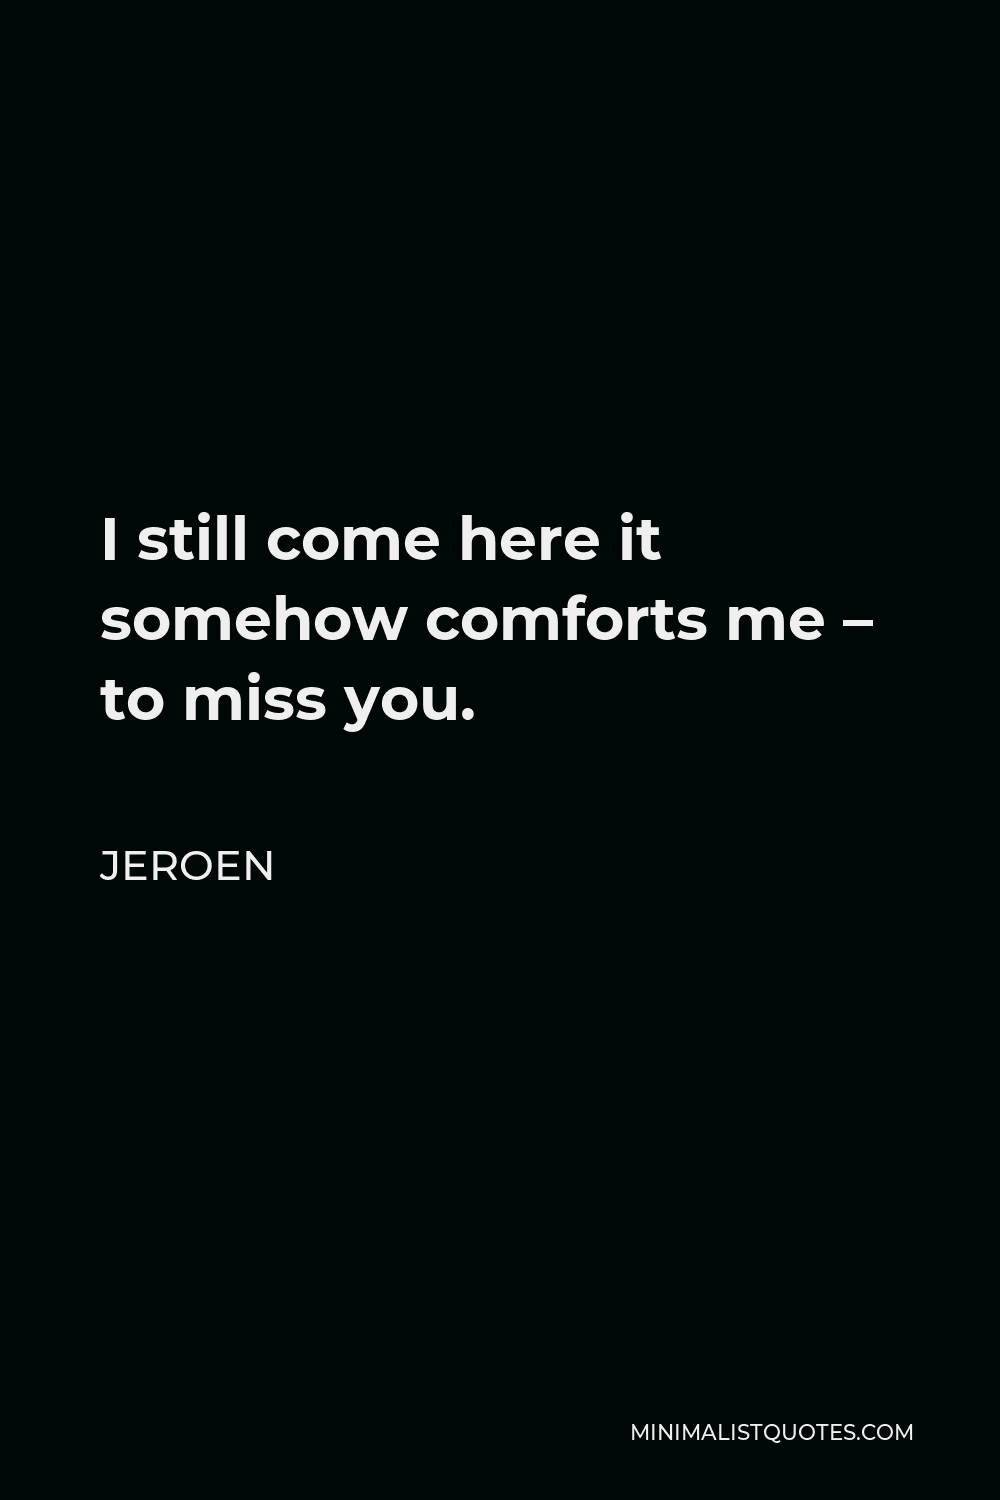 Jeroen Quote - I still come here it somehow comforts me – to miss you.